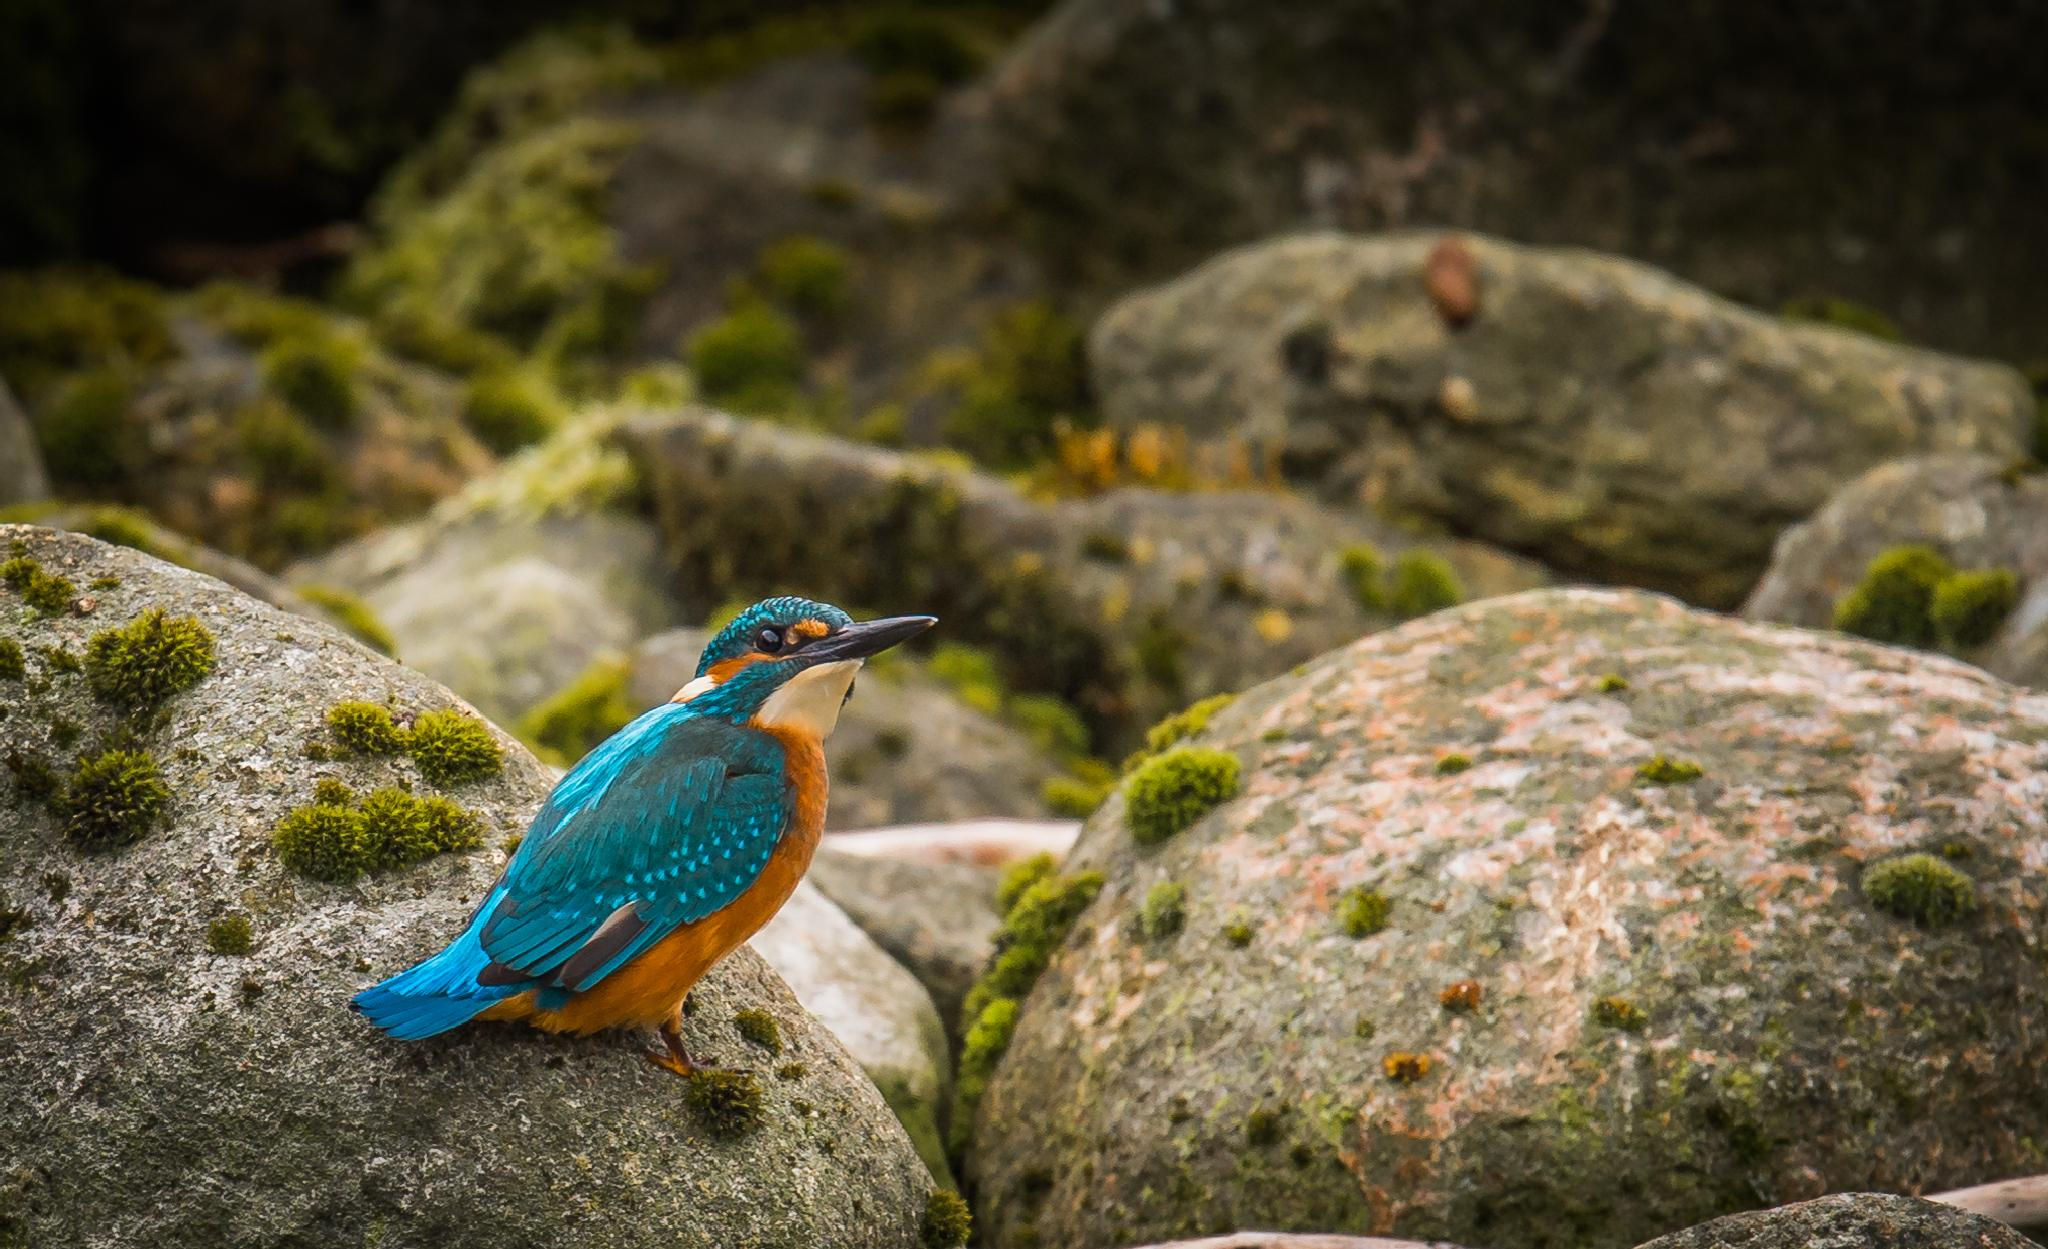 The kingfisher in posing mode. by mats.flygare.9